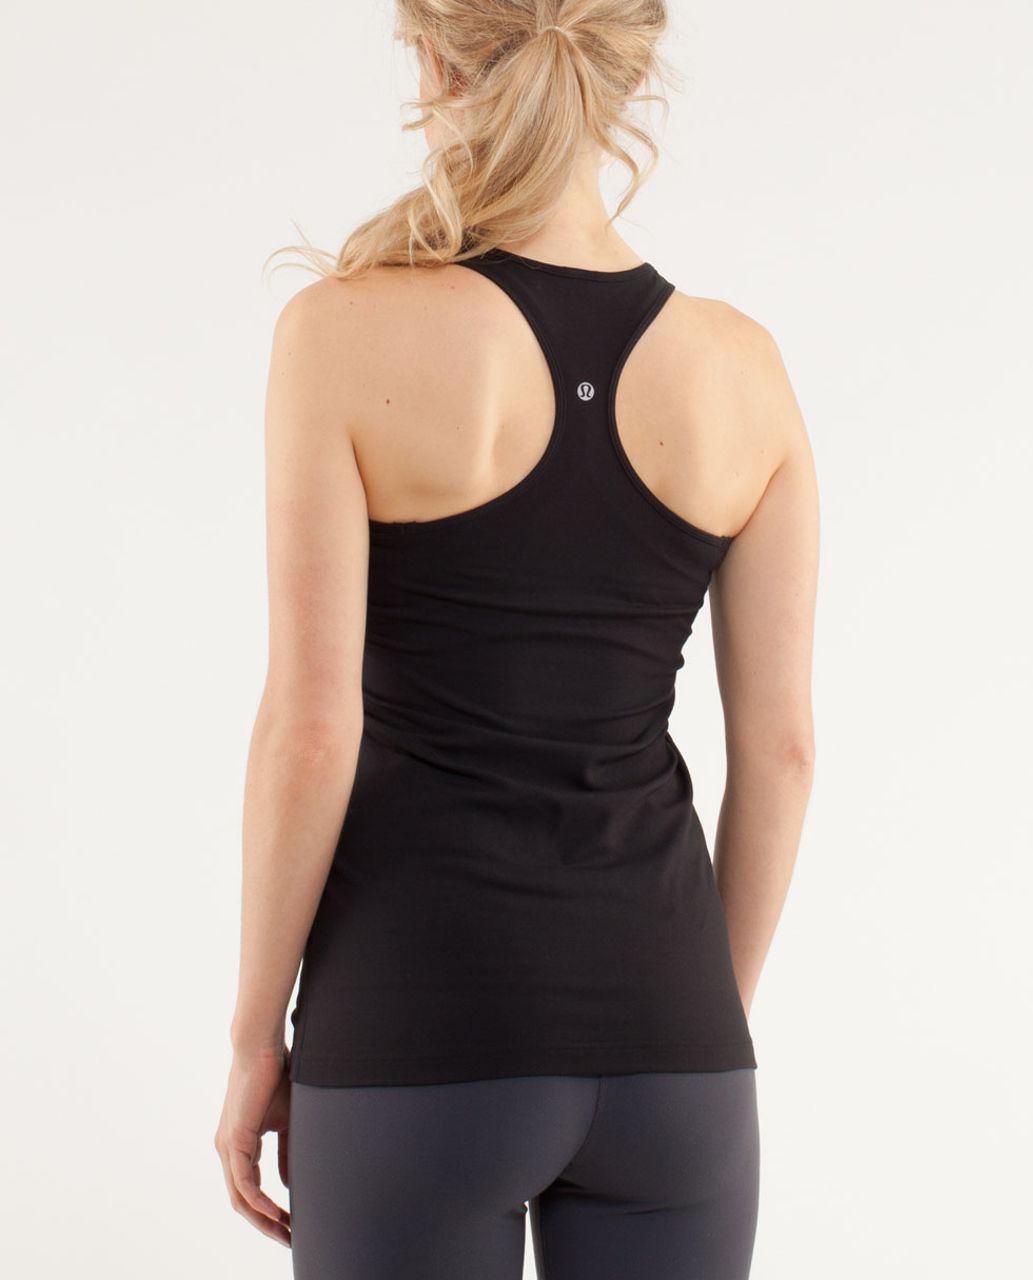 Lululemon Cool Racerback *Zipper - Black